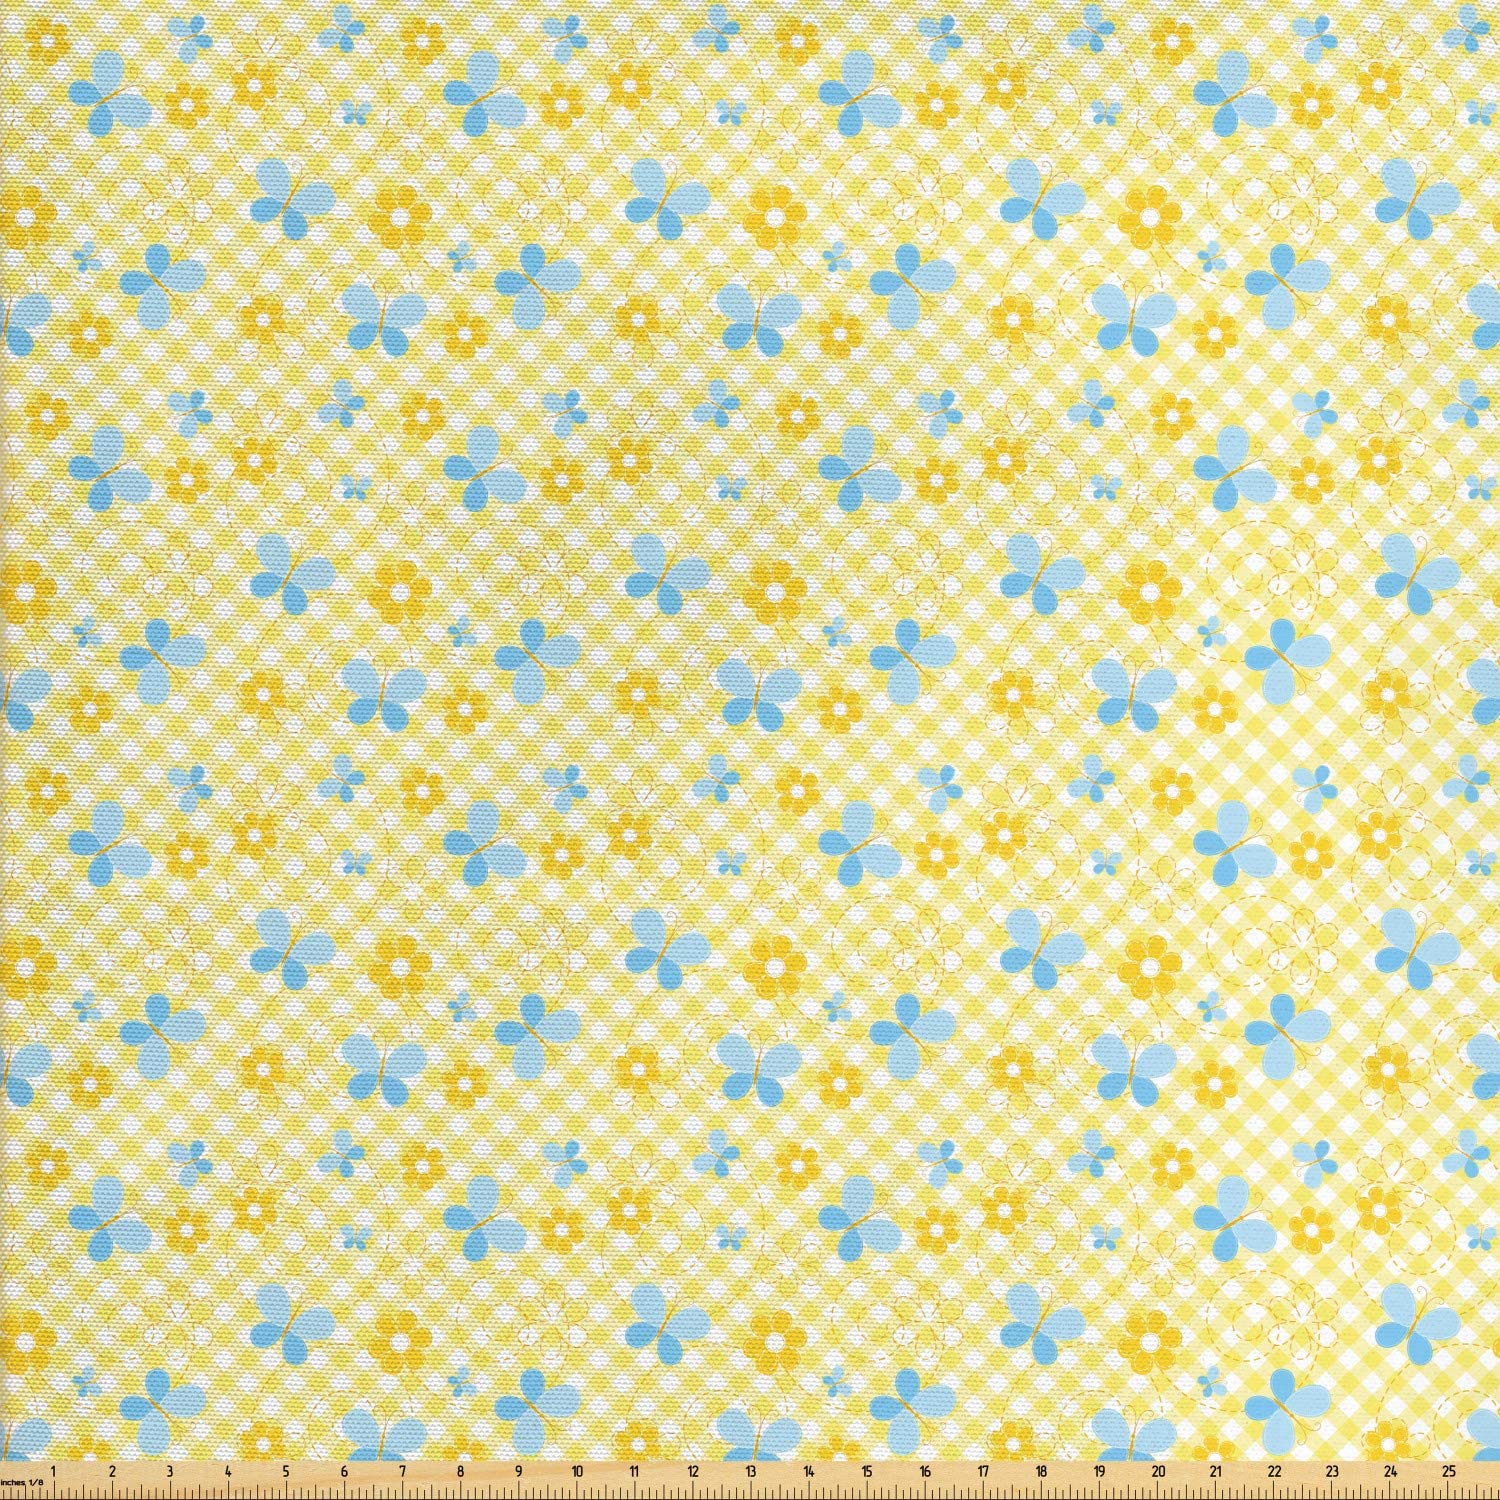 Ambesonne Checkered Fabric by The Yard, Kids Pattern with Daisy Flower and Butterflies, Decorative Fabric for Upholstery and Home Accents, 3 Yards, Baby Blue